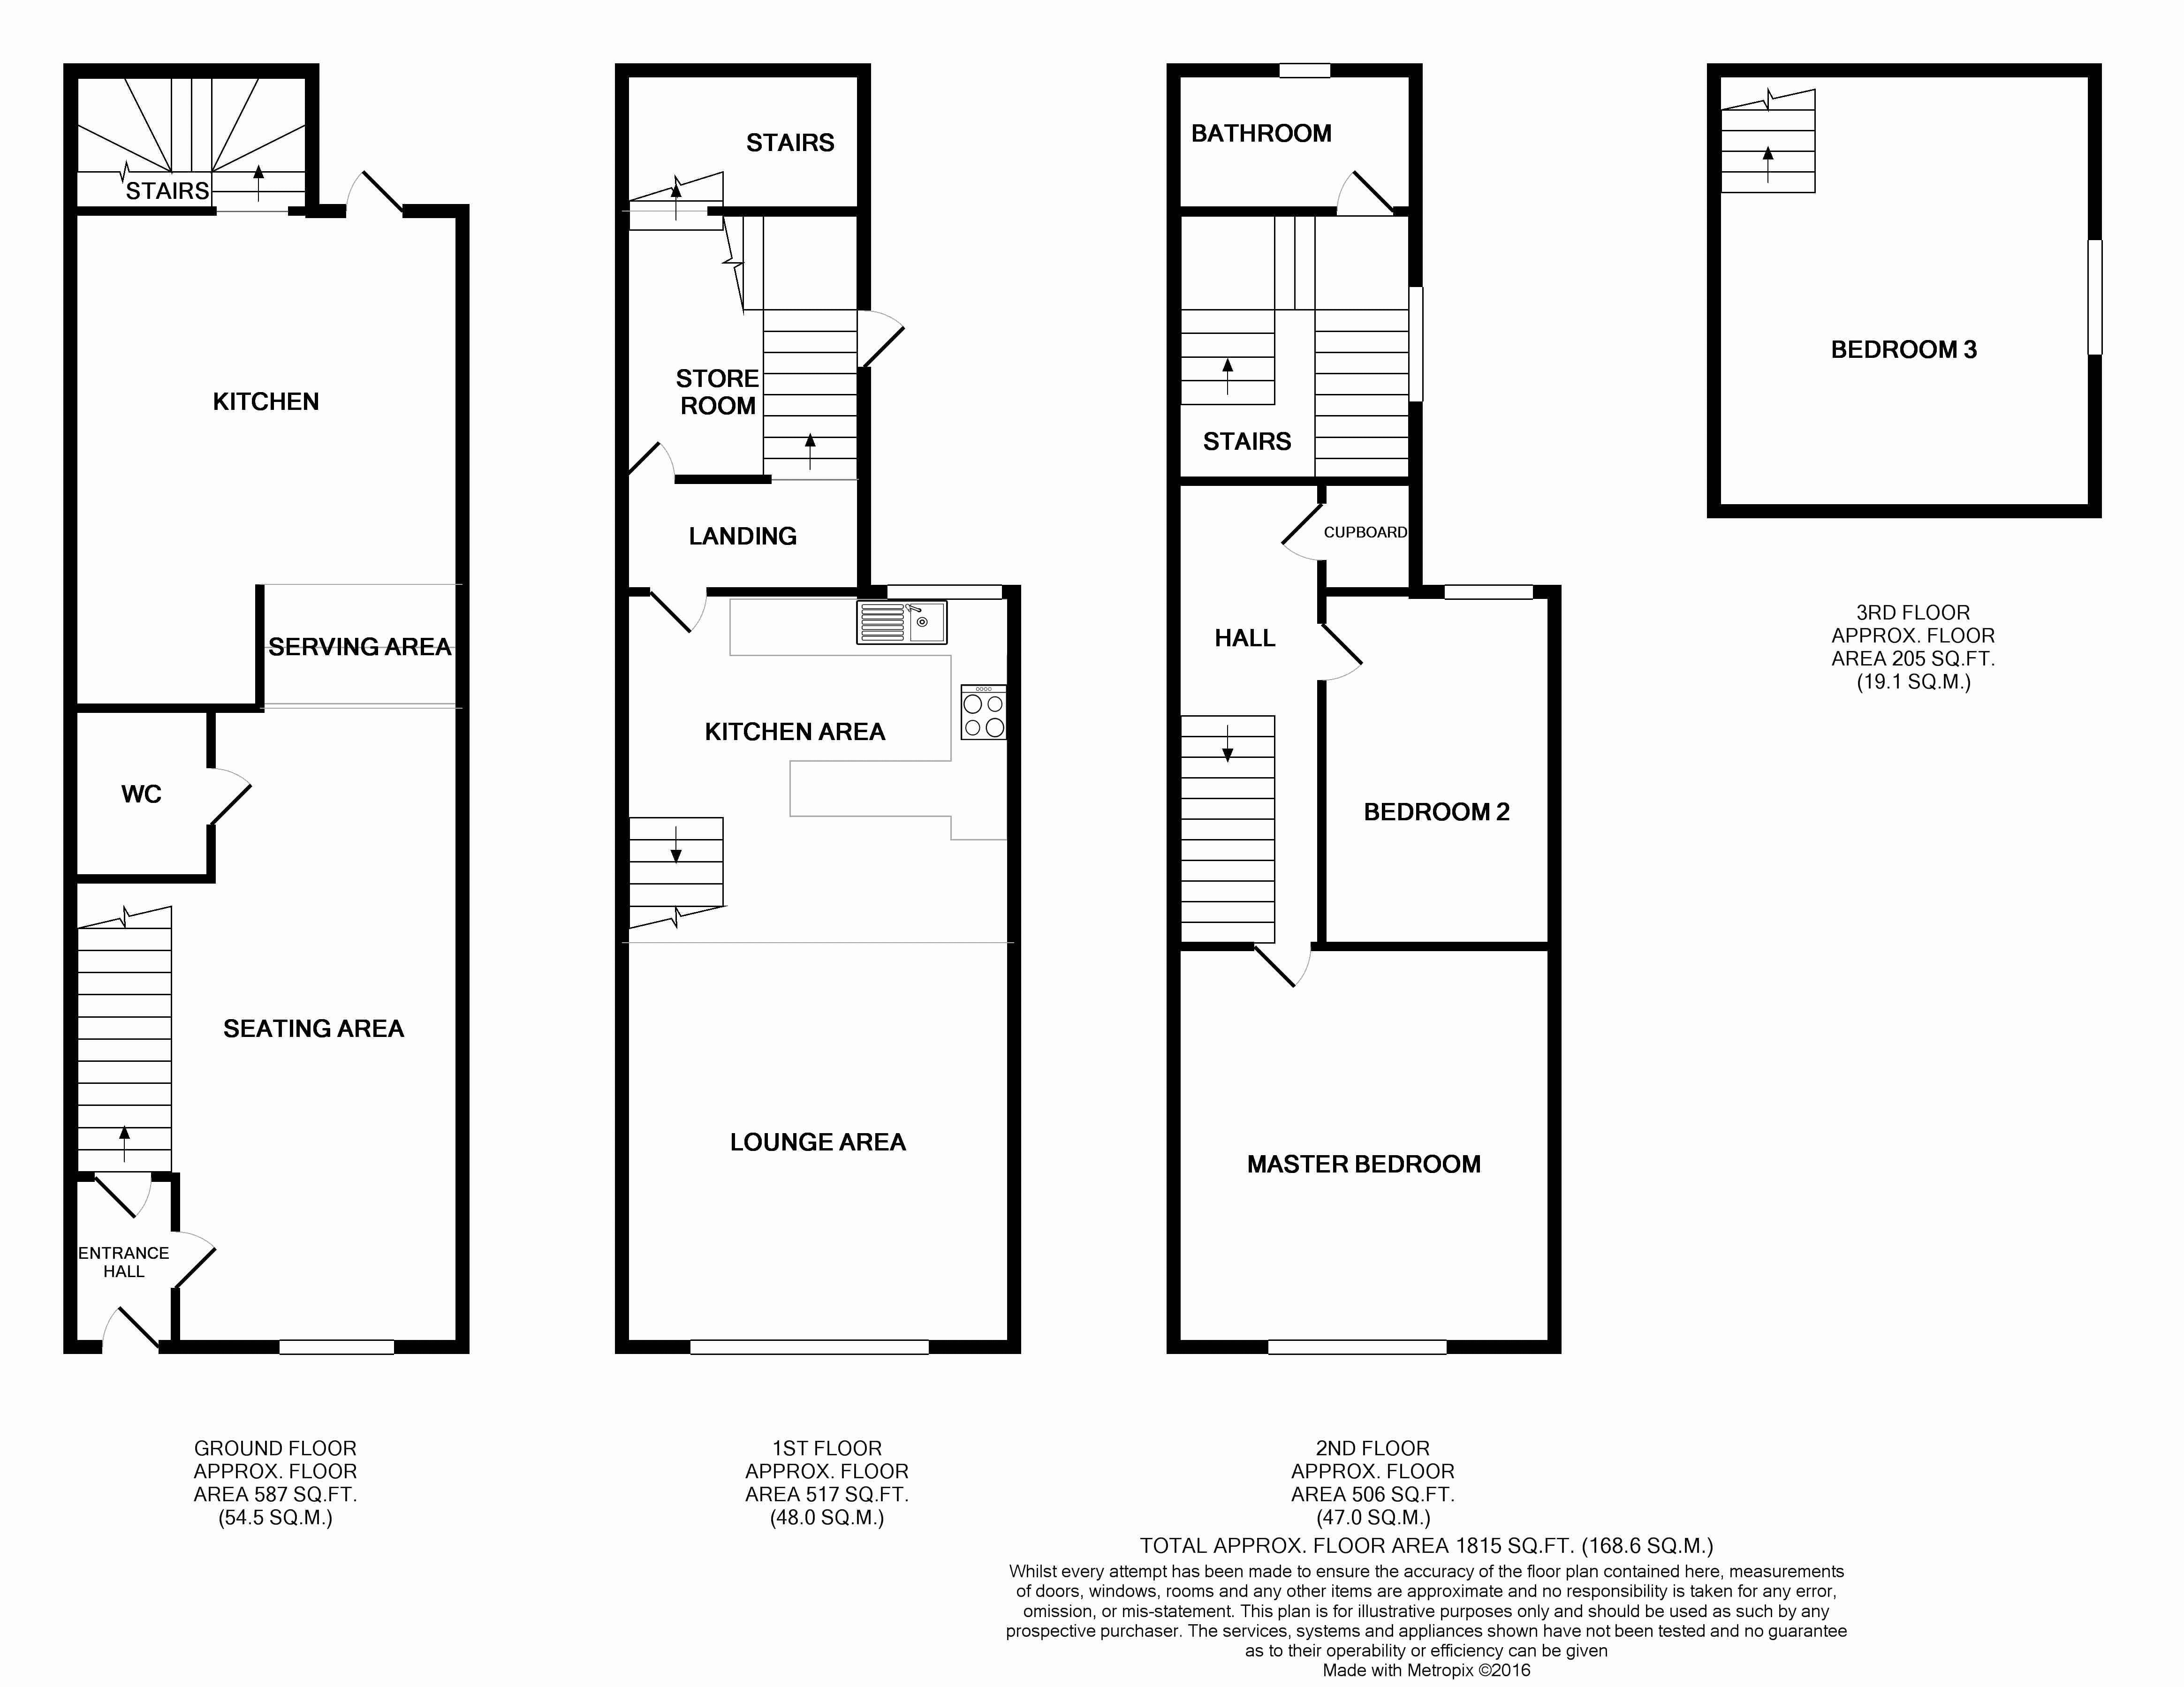 19 Bridgeland Street Floor Plan